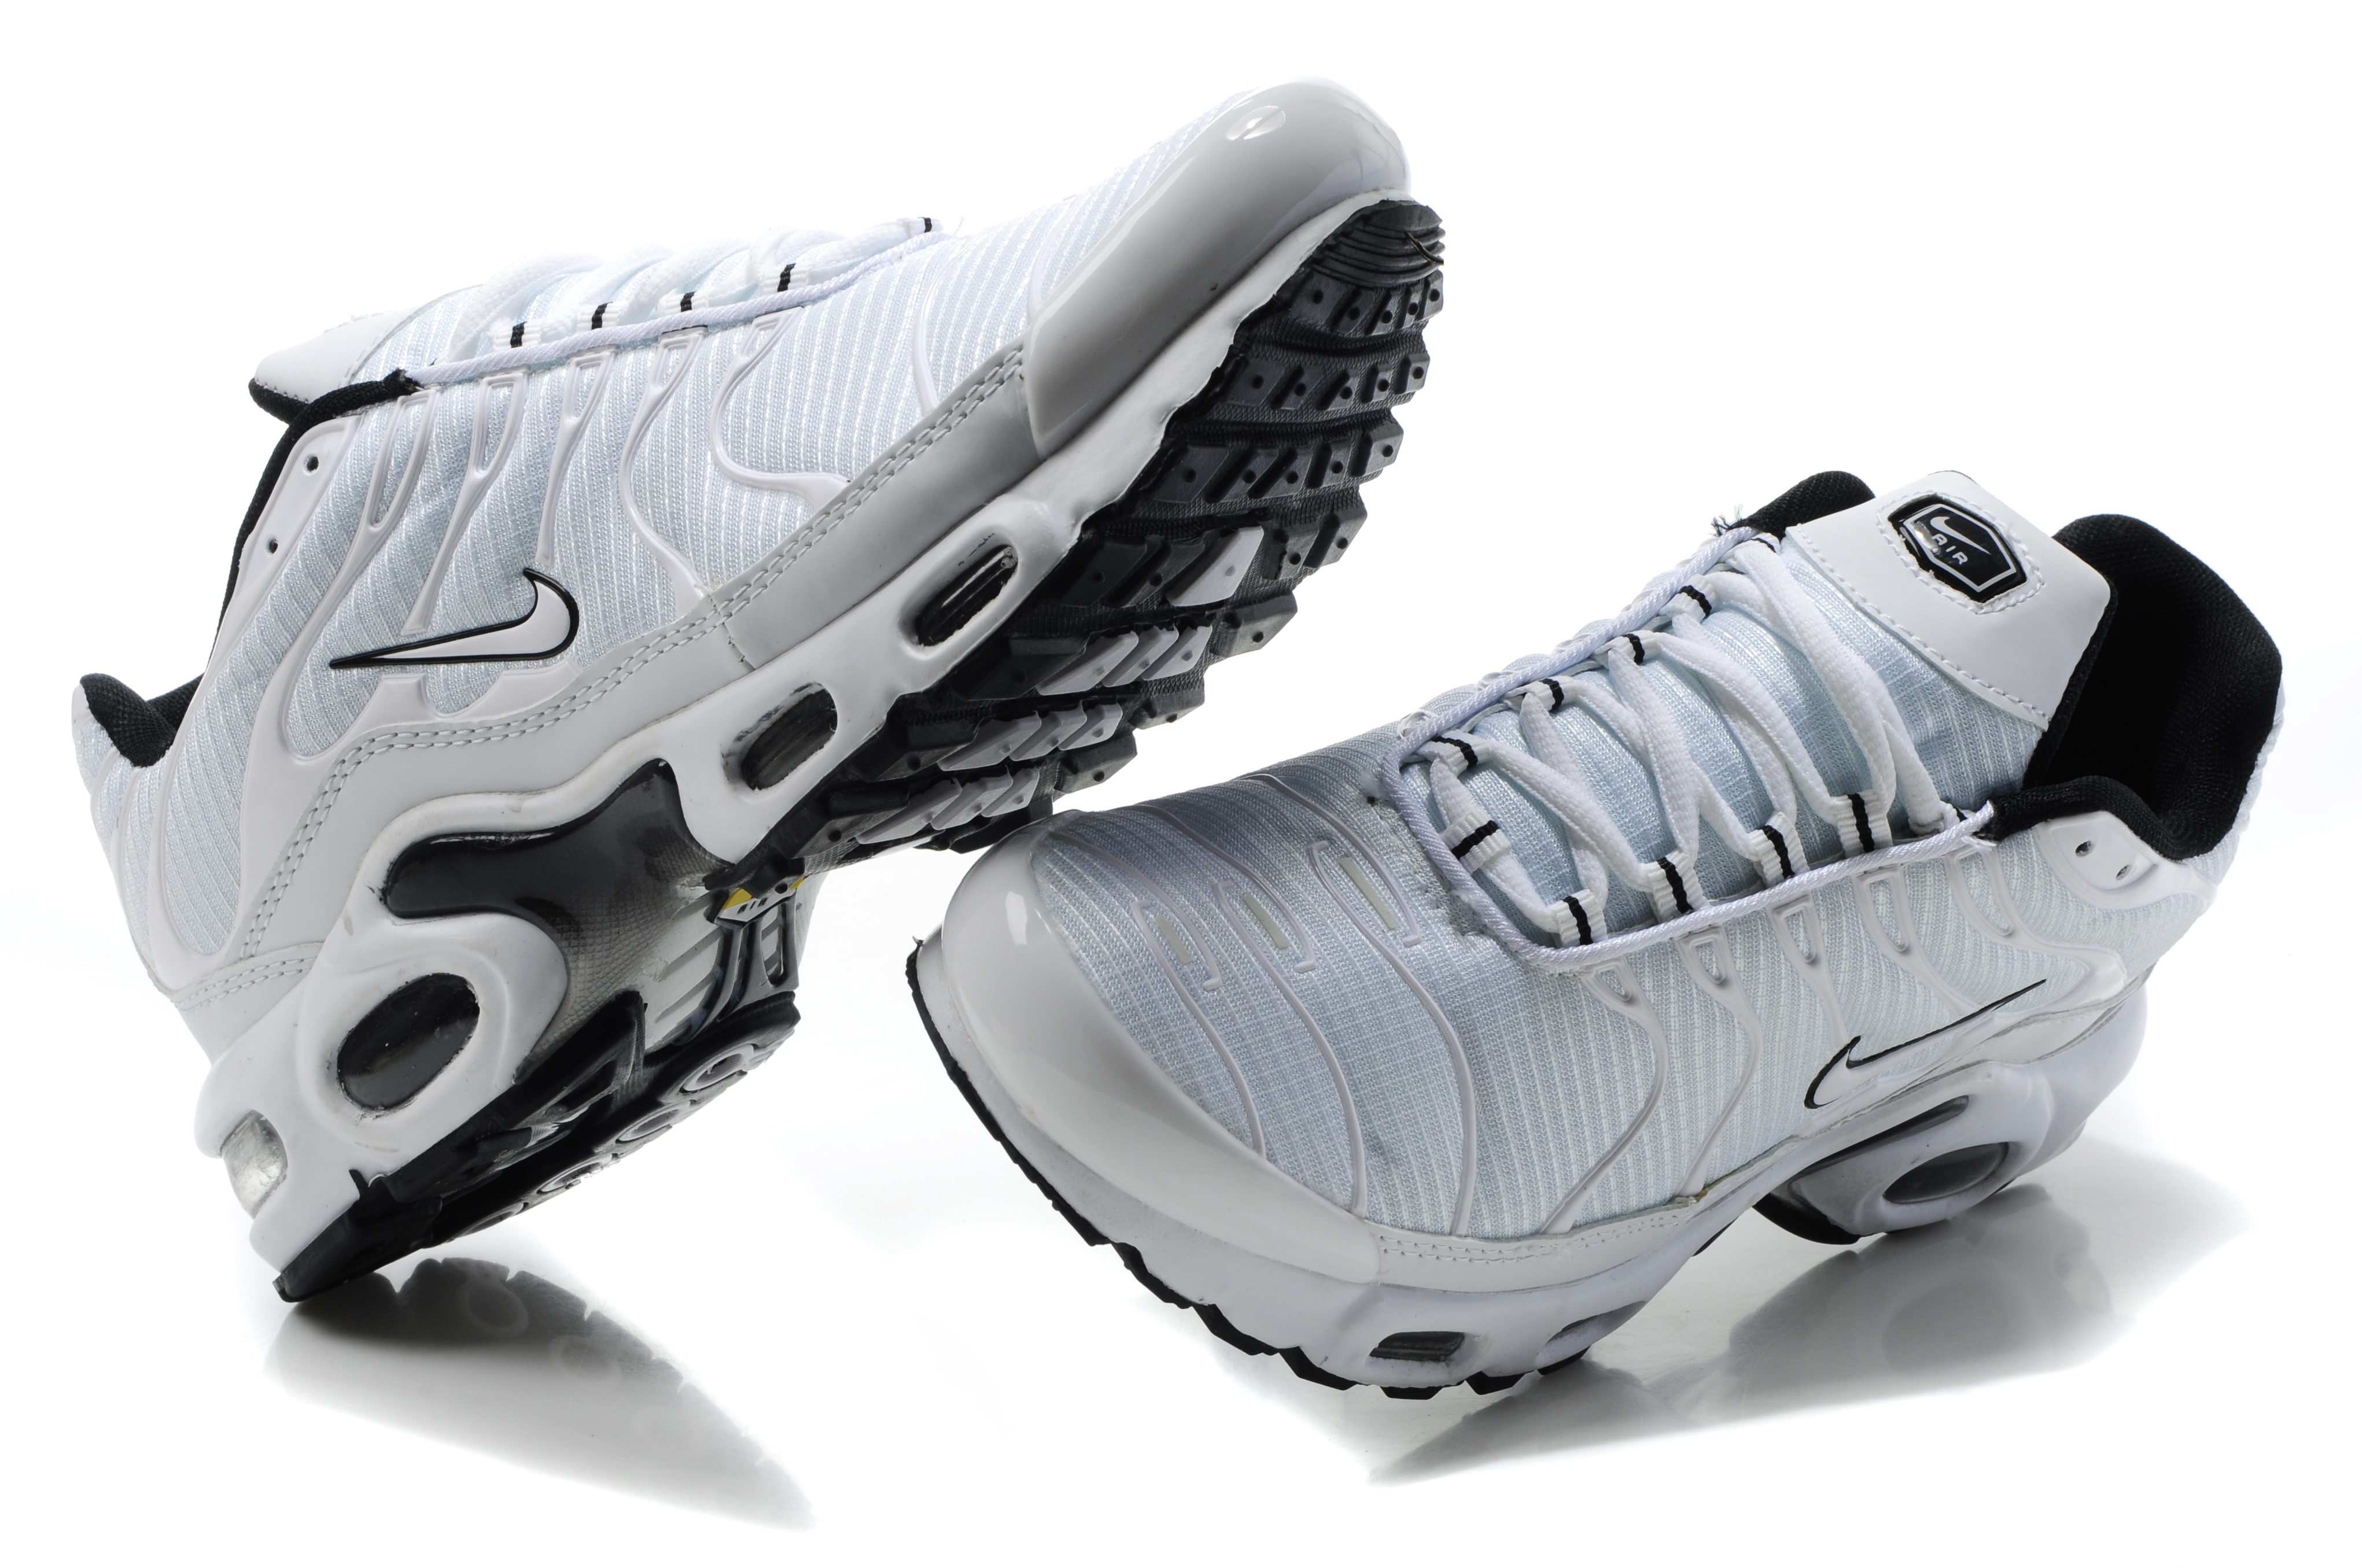 revendeur c9cb4 cd165 nike tn requin wiki,prix des tn,tn games 3rd space